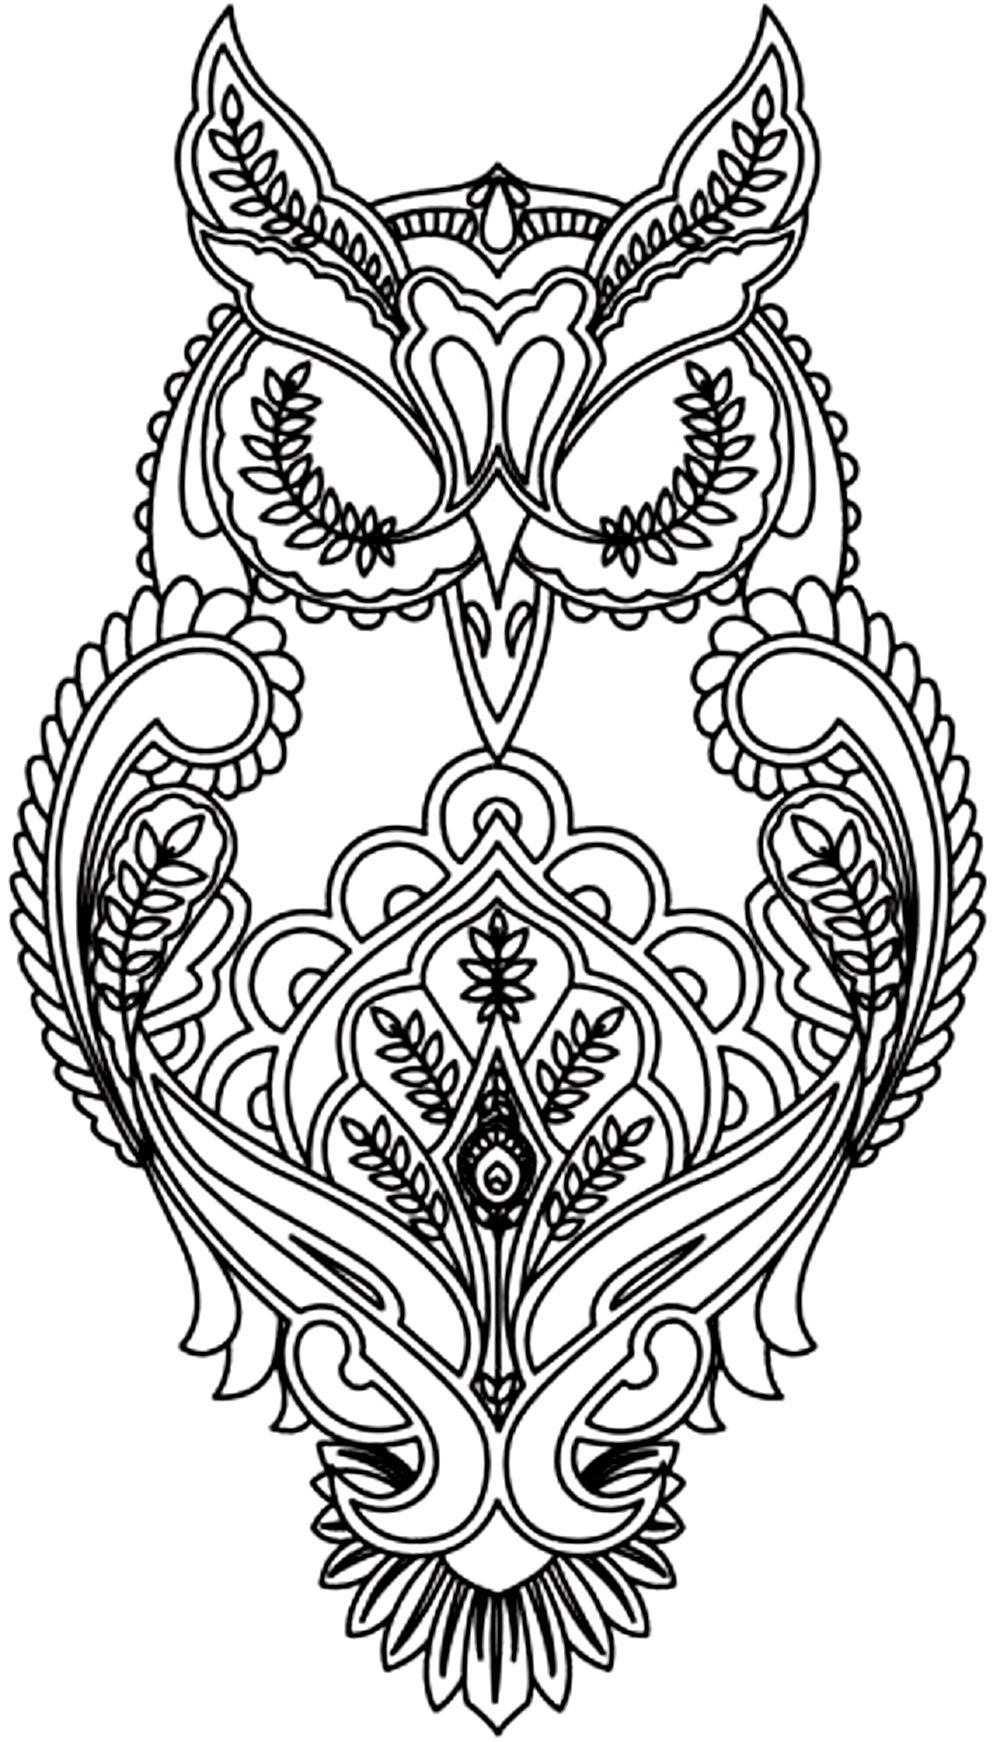 Coloring activities for seniors - Free Coloring Page Coloring Adult Difficult Owl